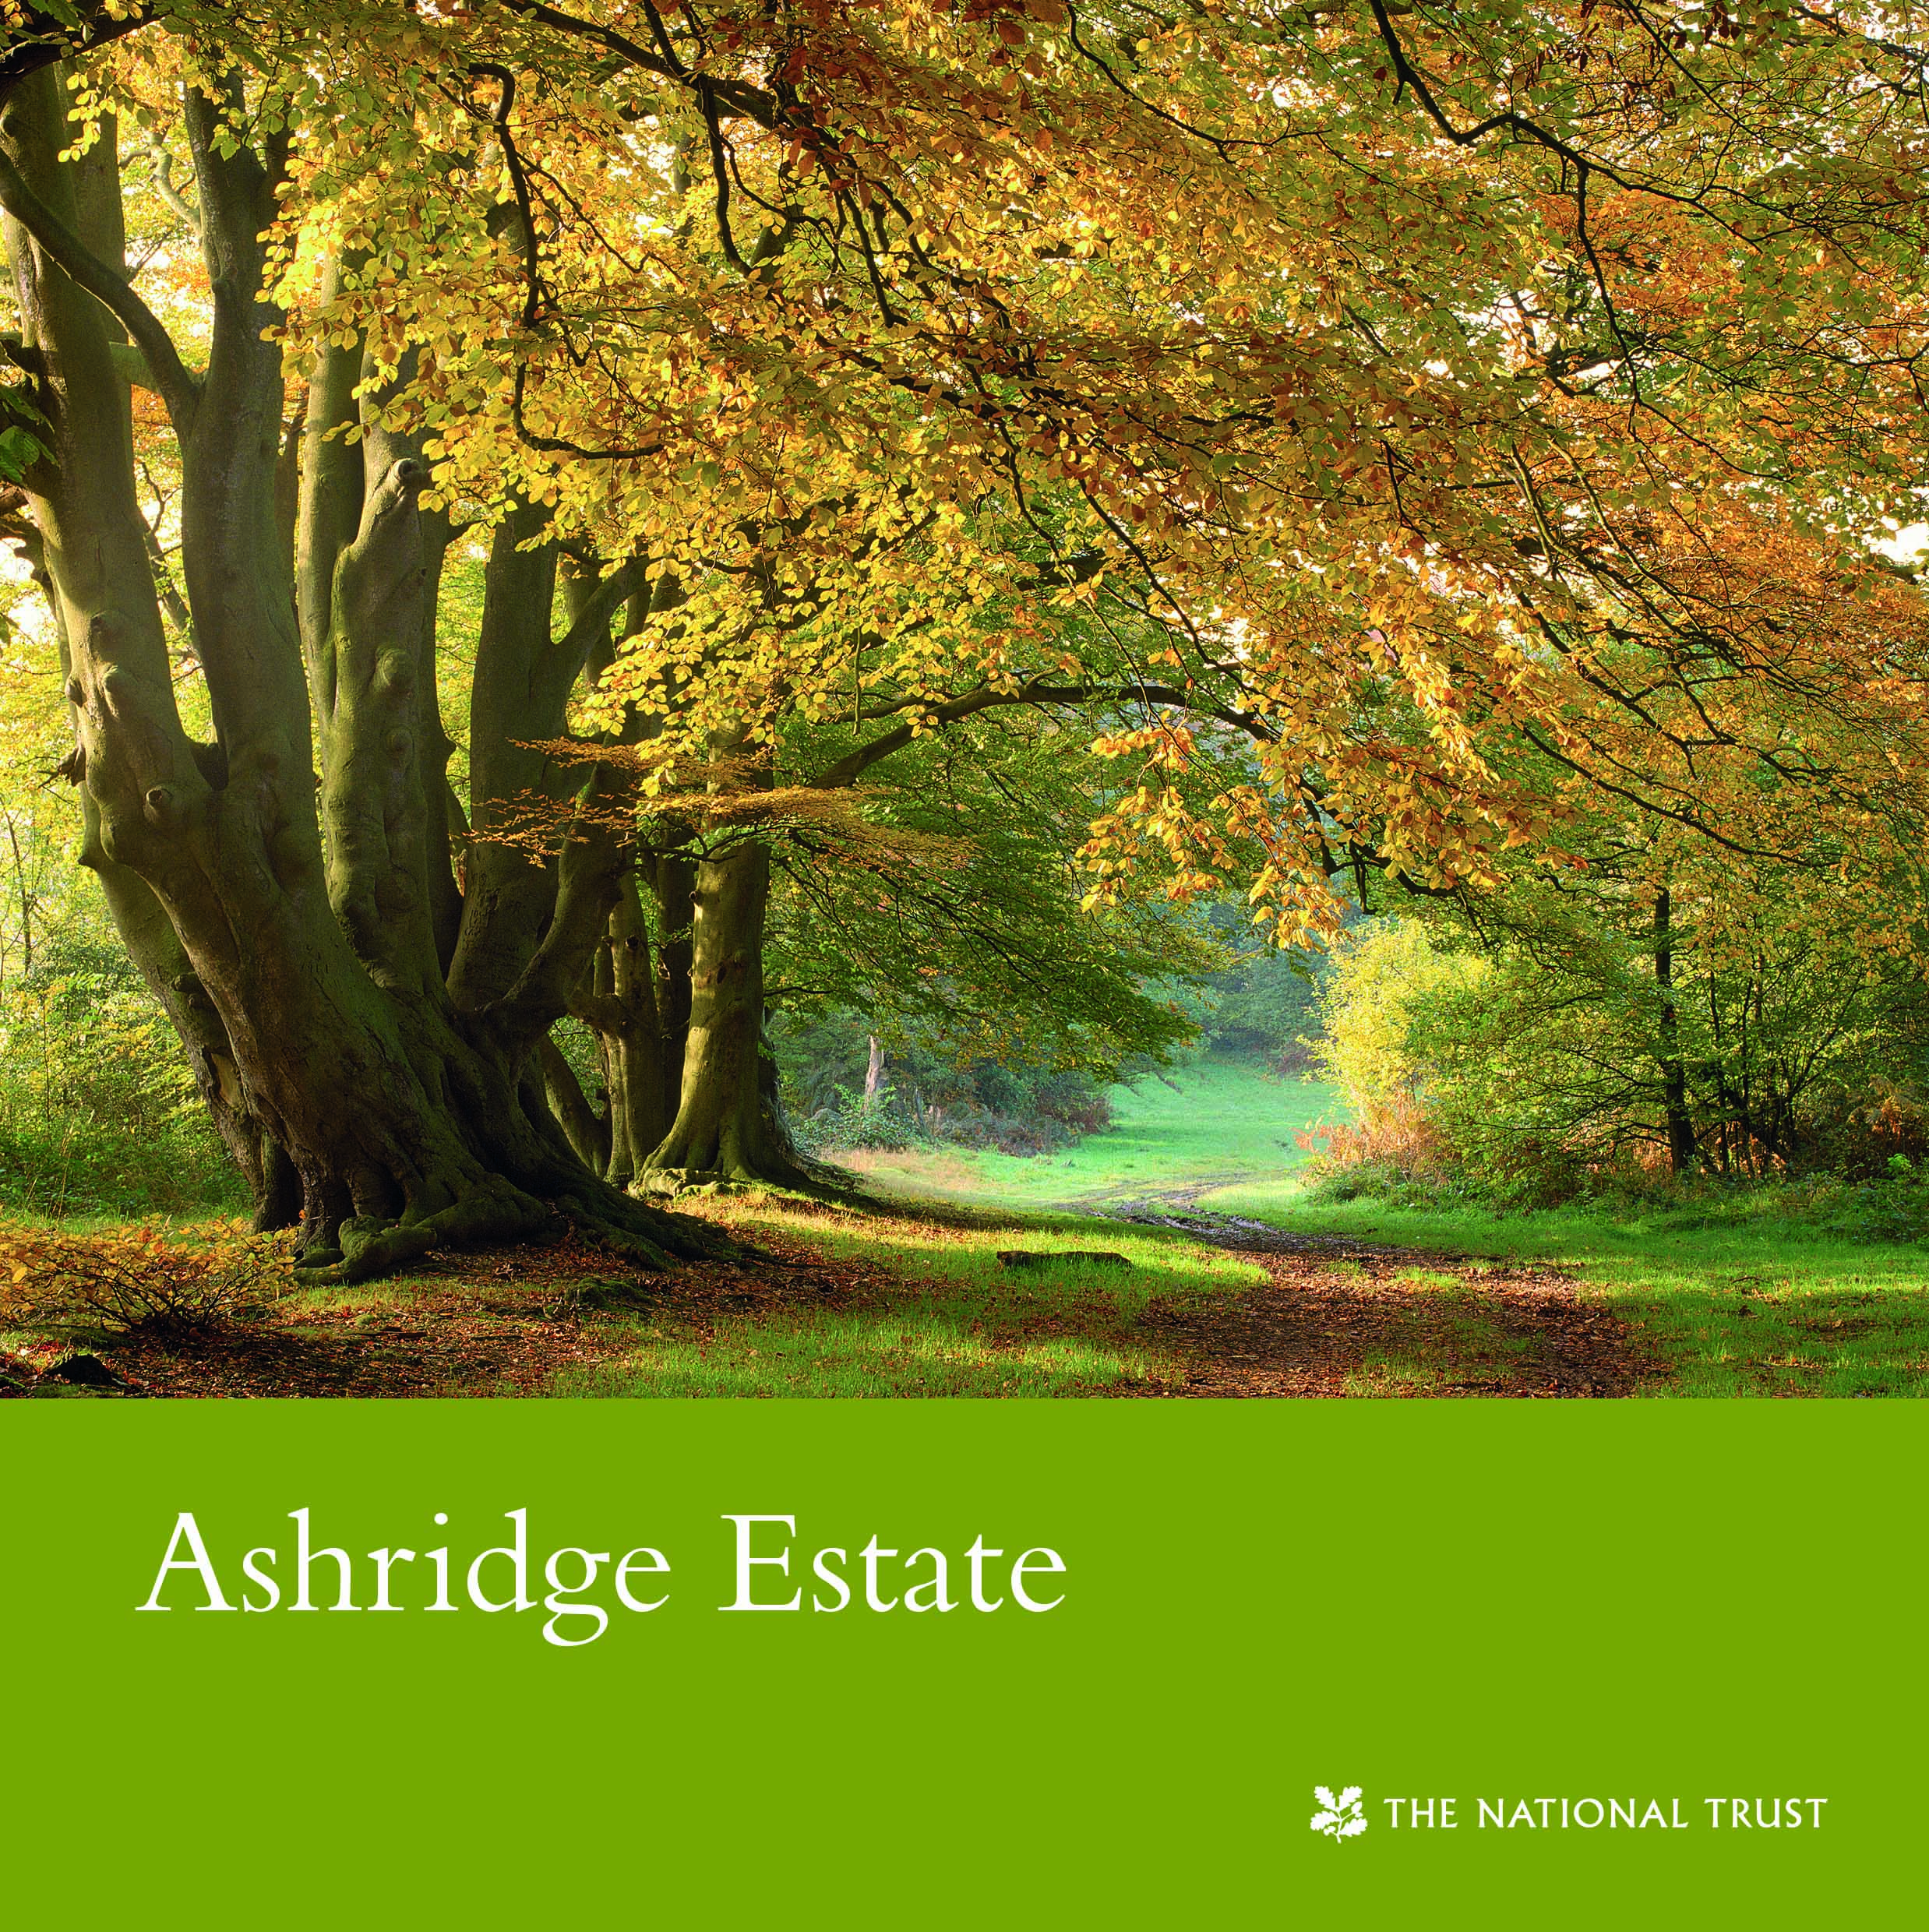 Ashridge Estate